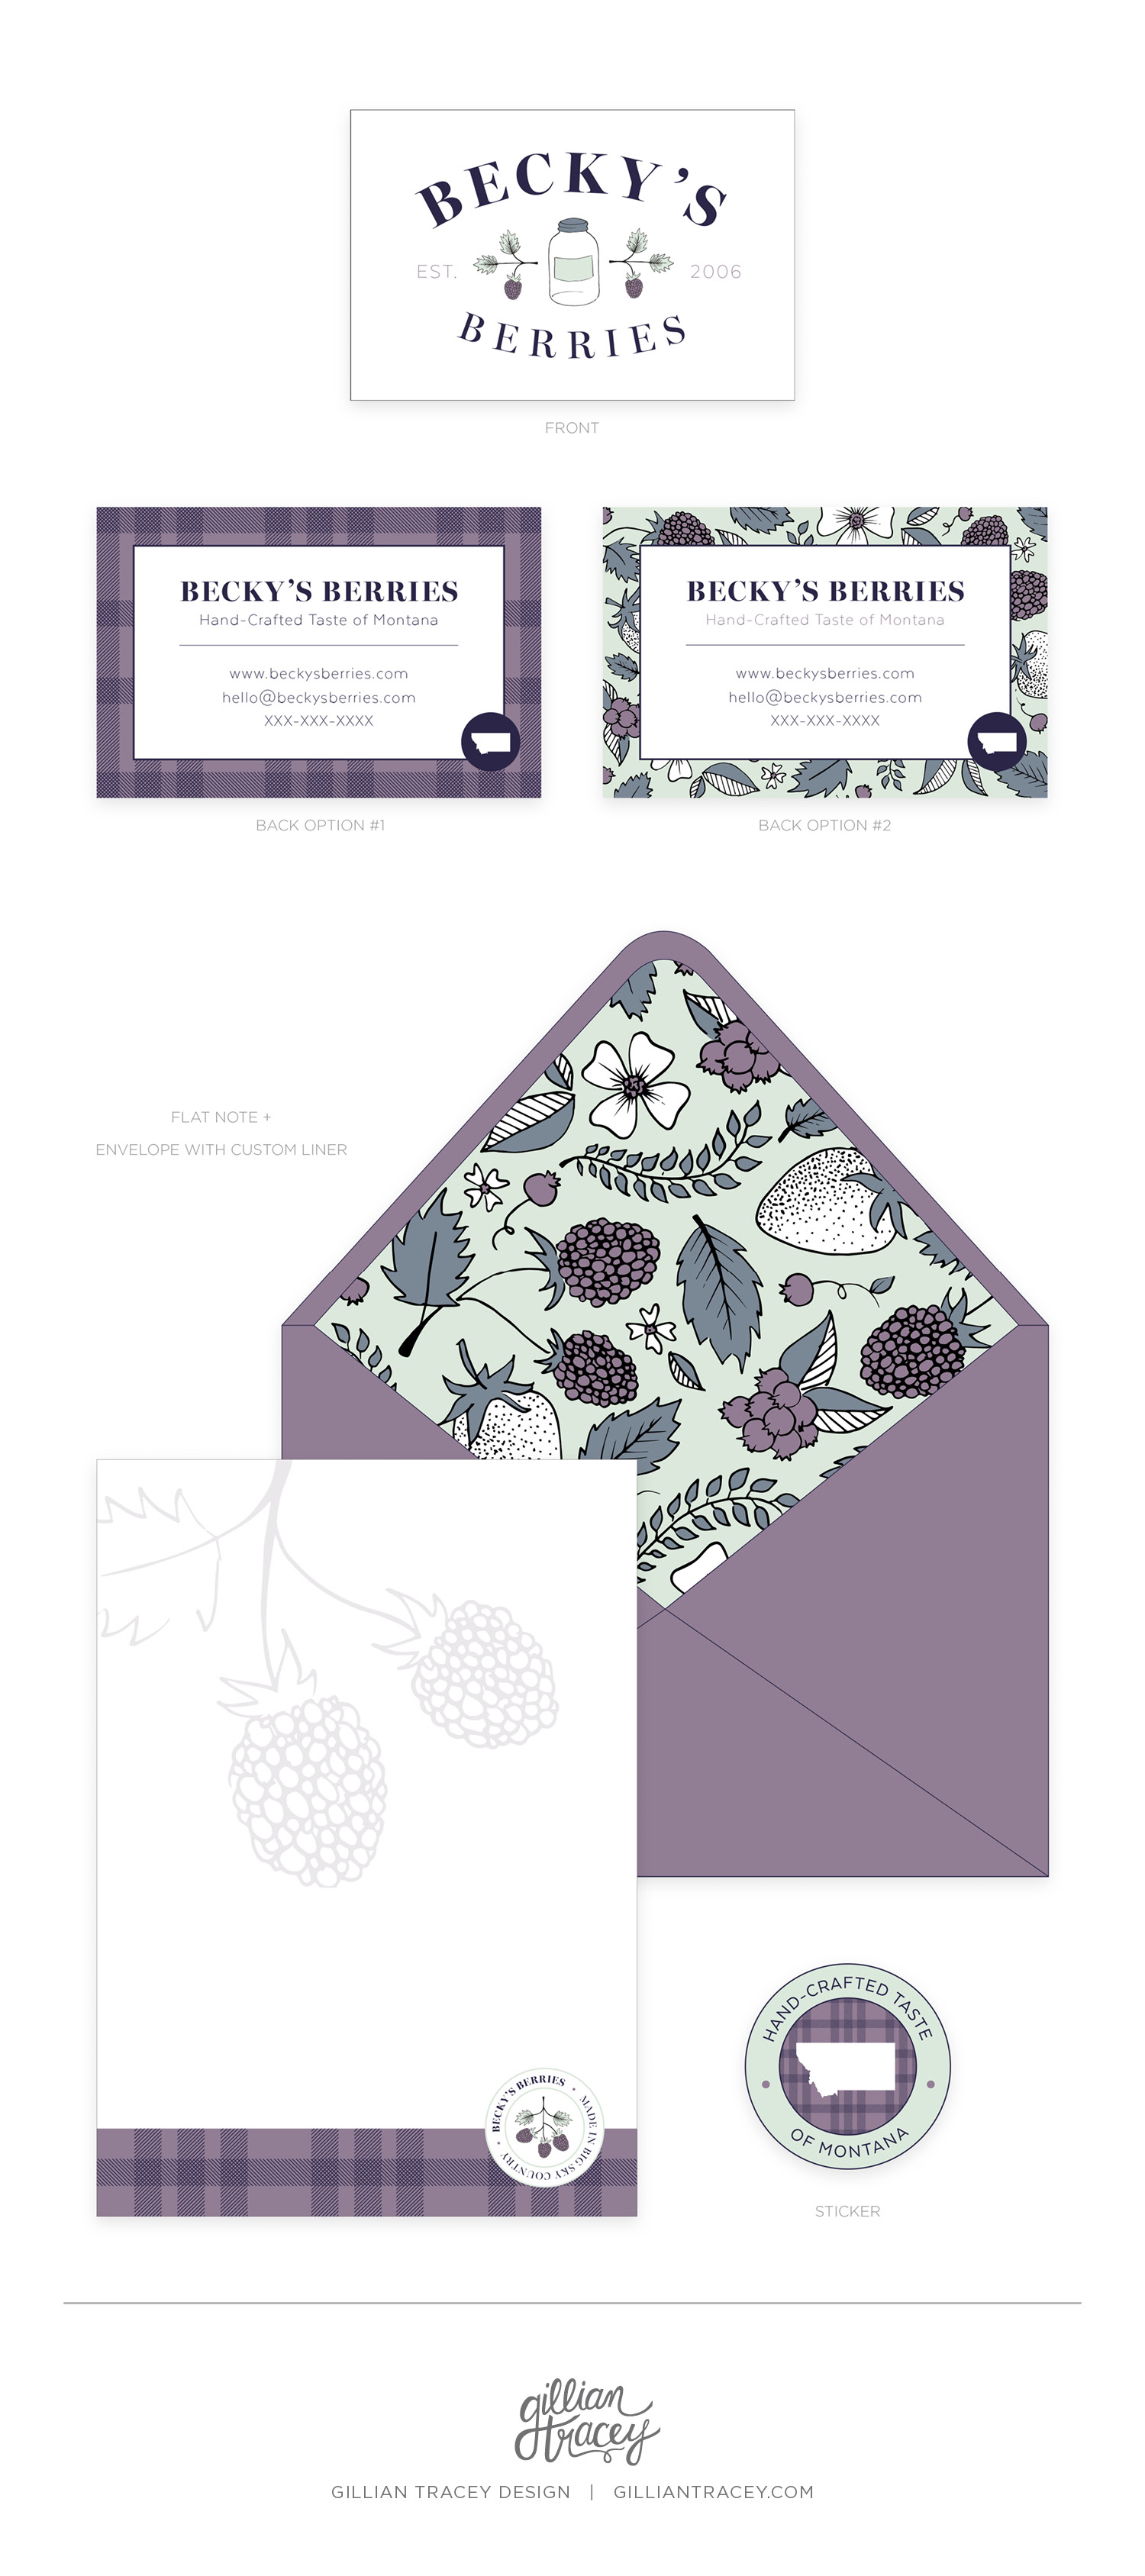 Becky's Berries Concept Print Collateral Items - Gillian Tracey Design